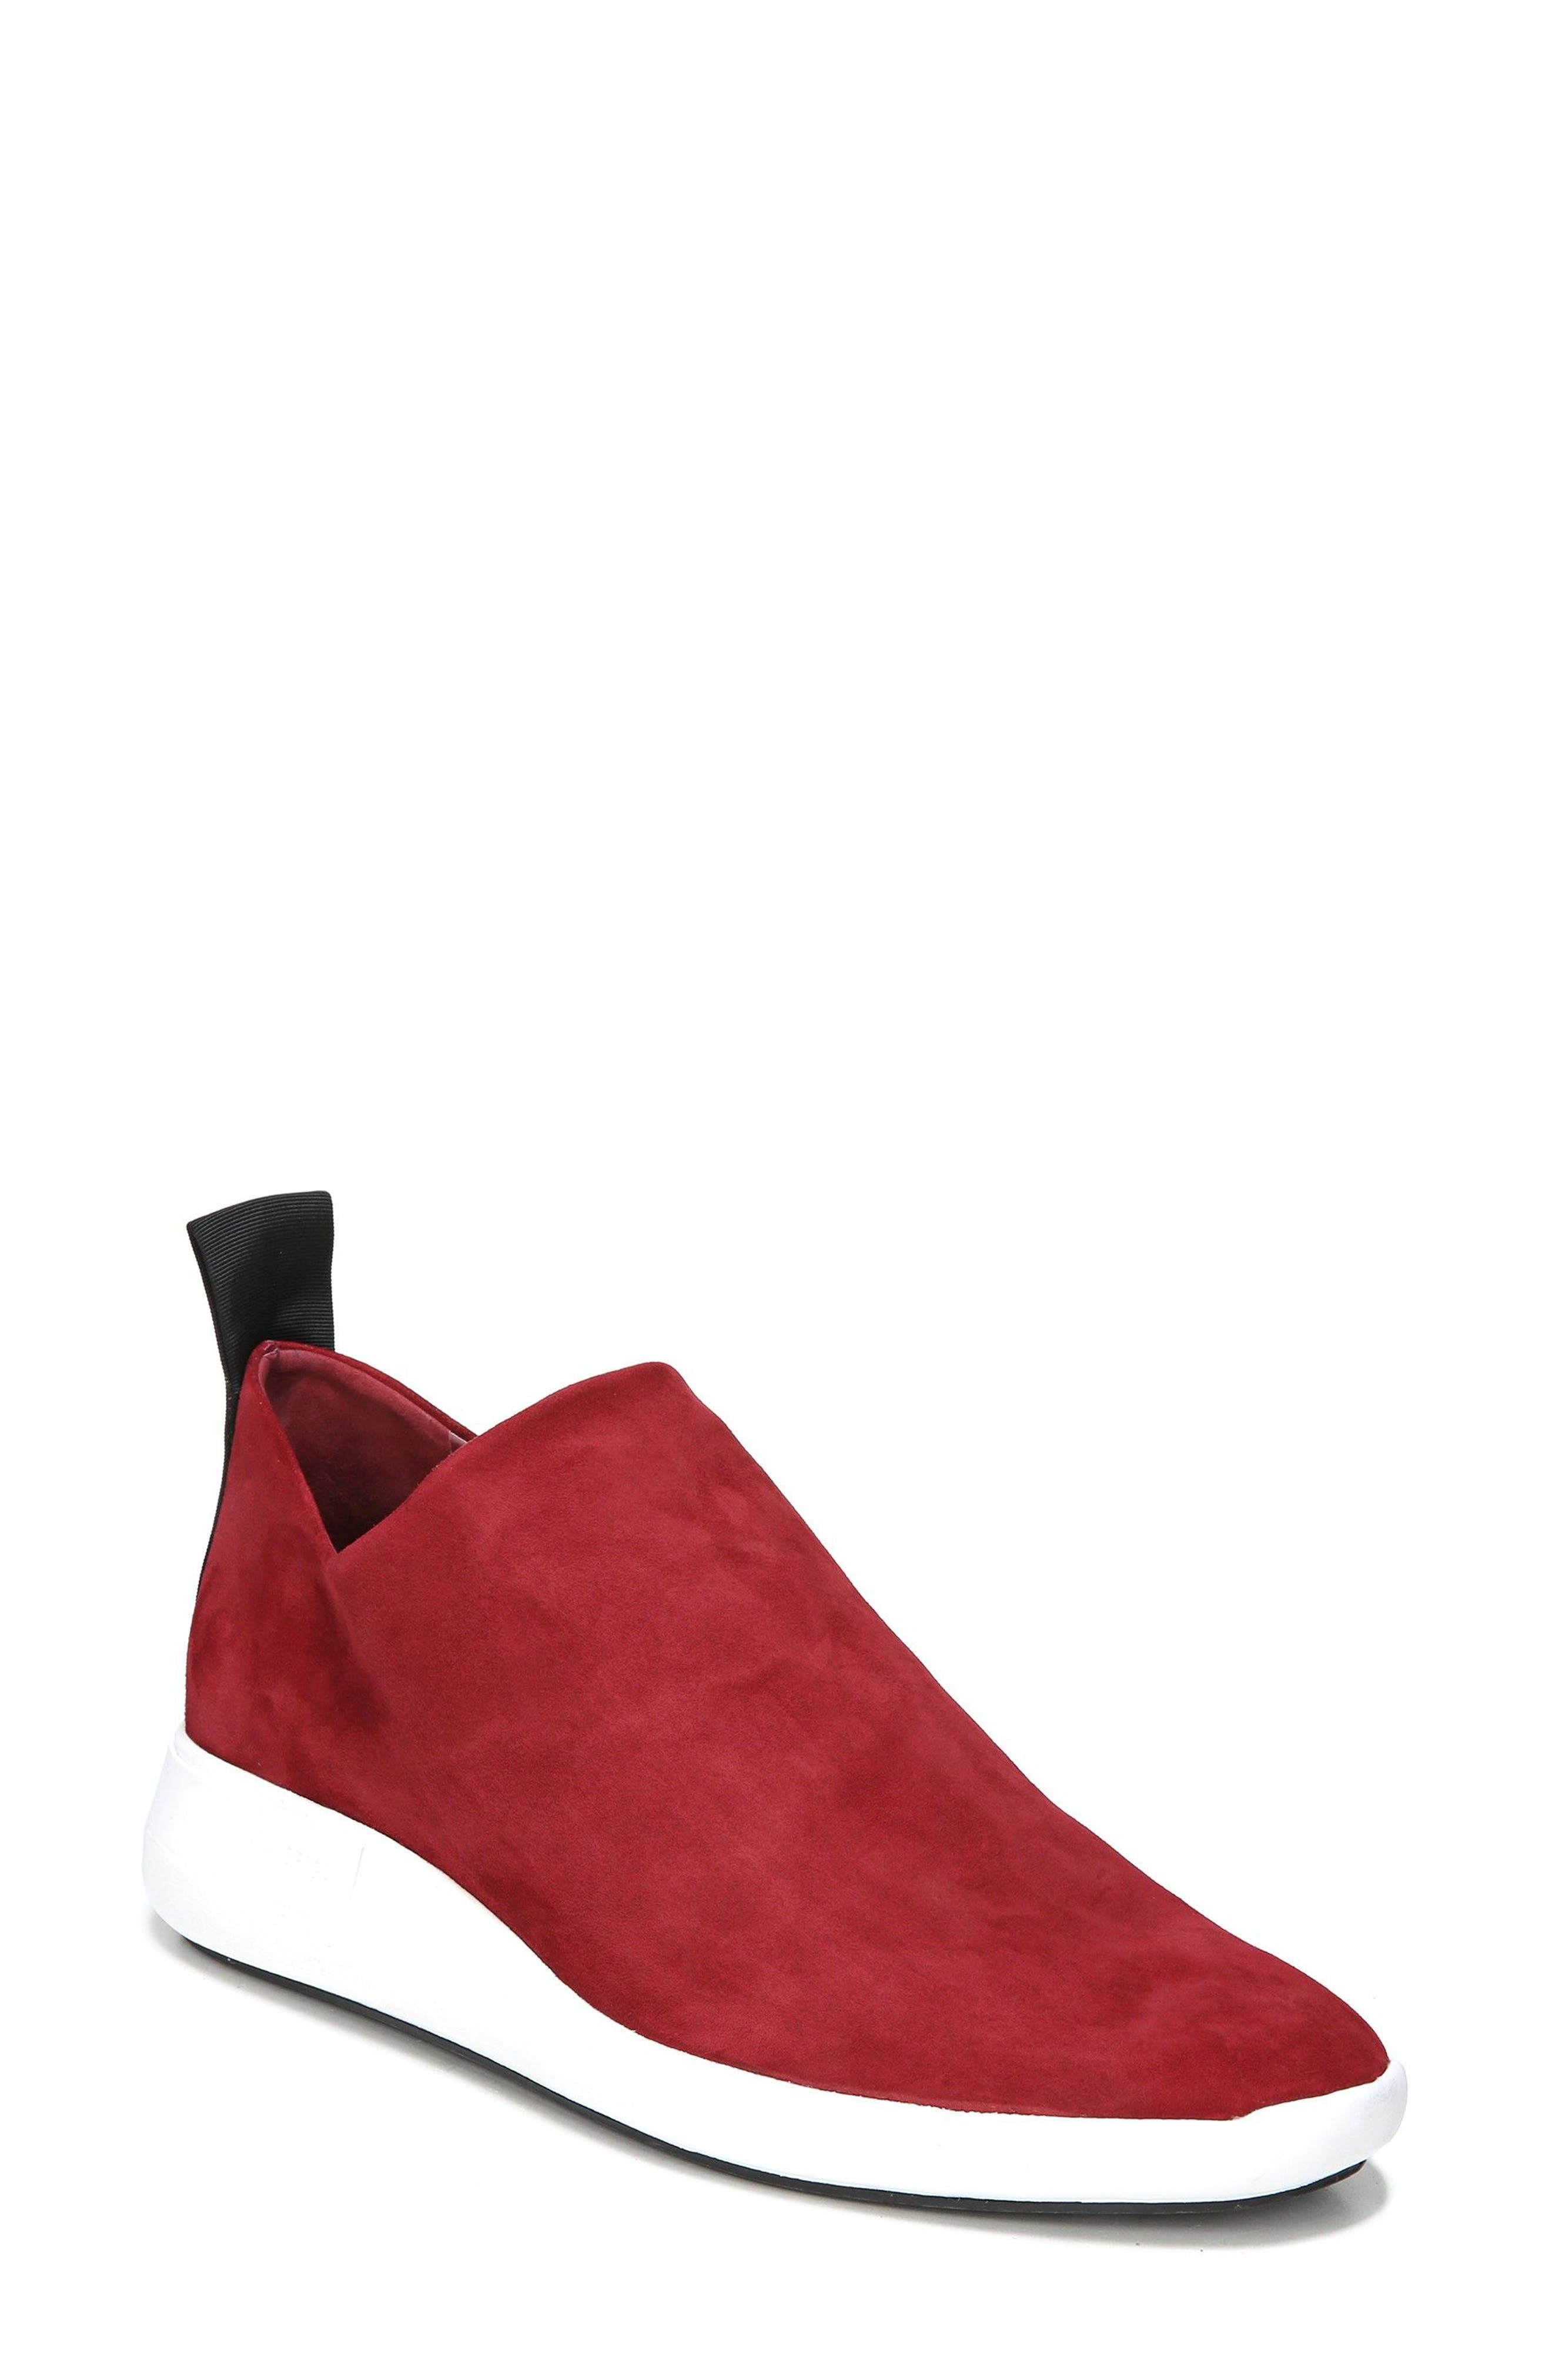 Marlow Slip-On Sneaker,                             Main thumbnail 1, color,                             Ruby Suede